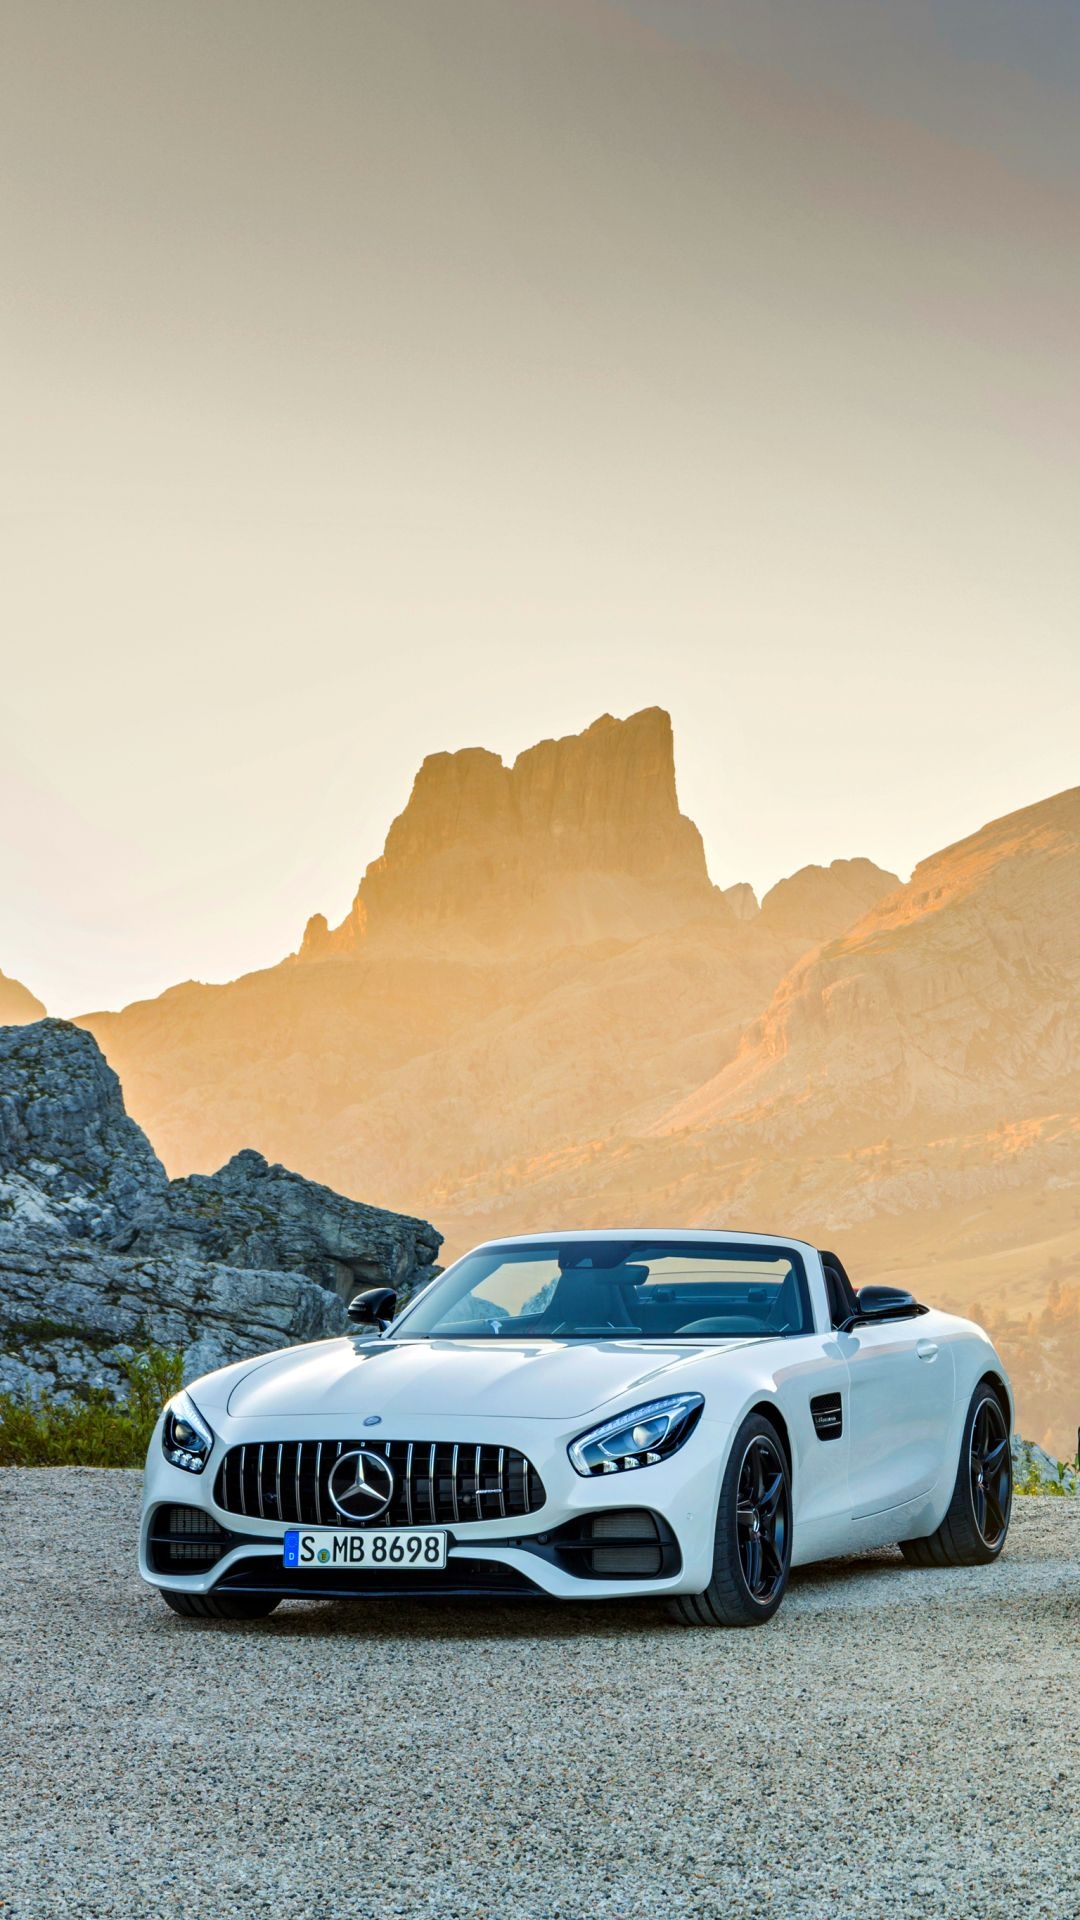 Vehicles Mercedes Amg Gt 1080x1920 Mobile Wallpaper Mercedes